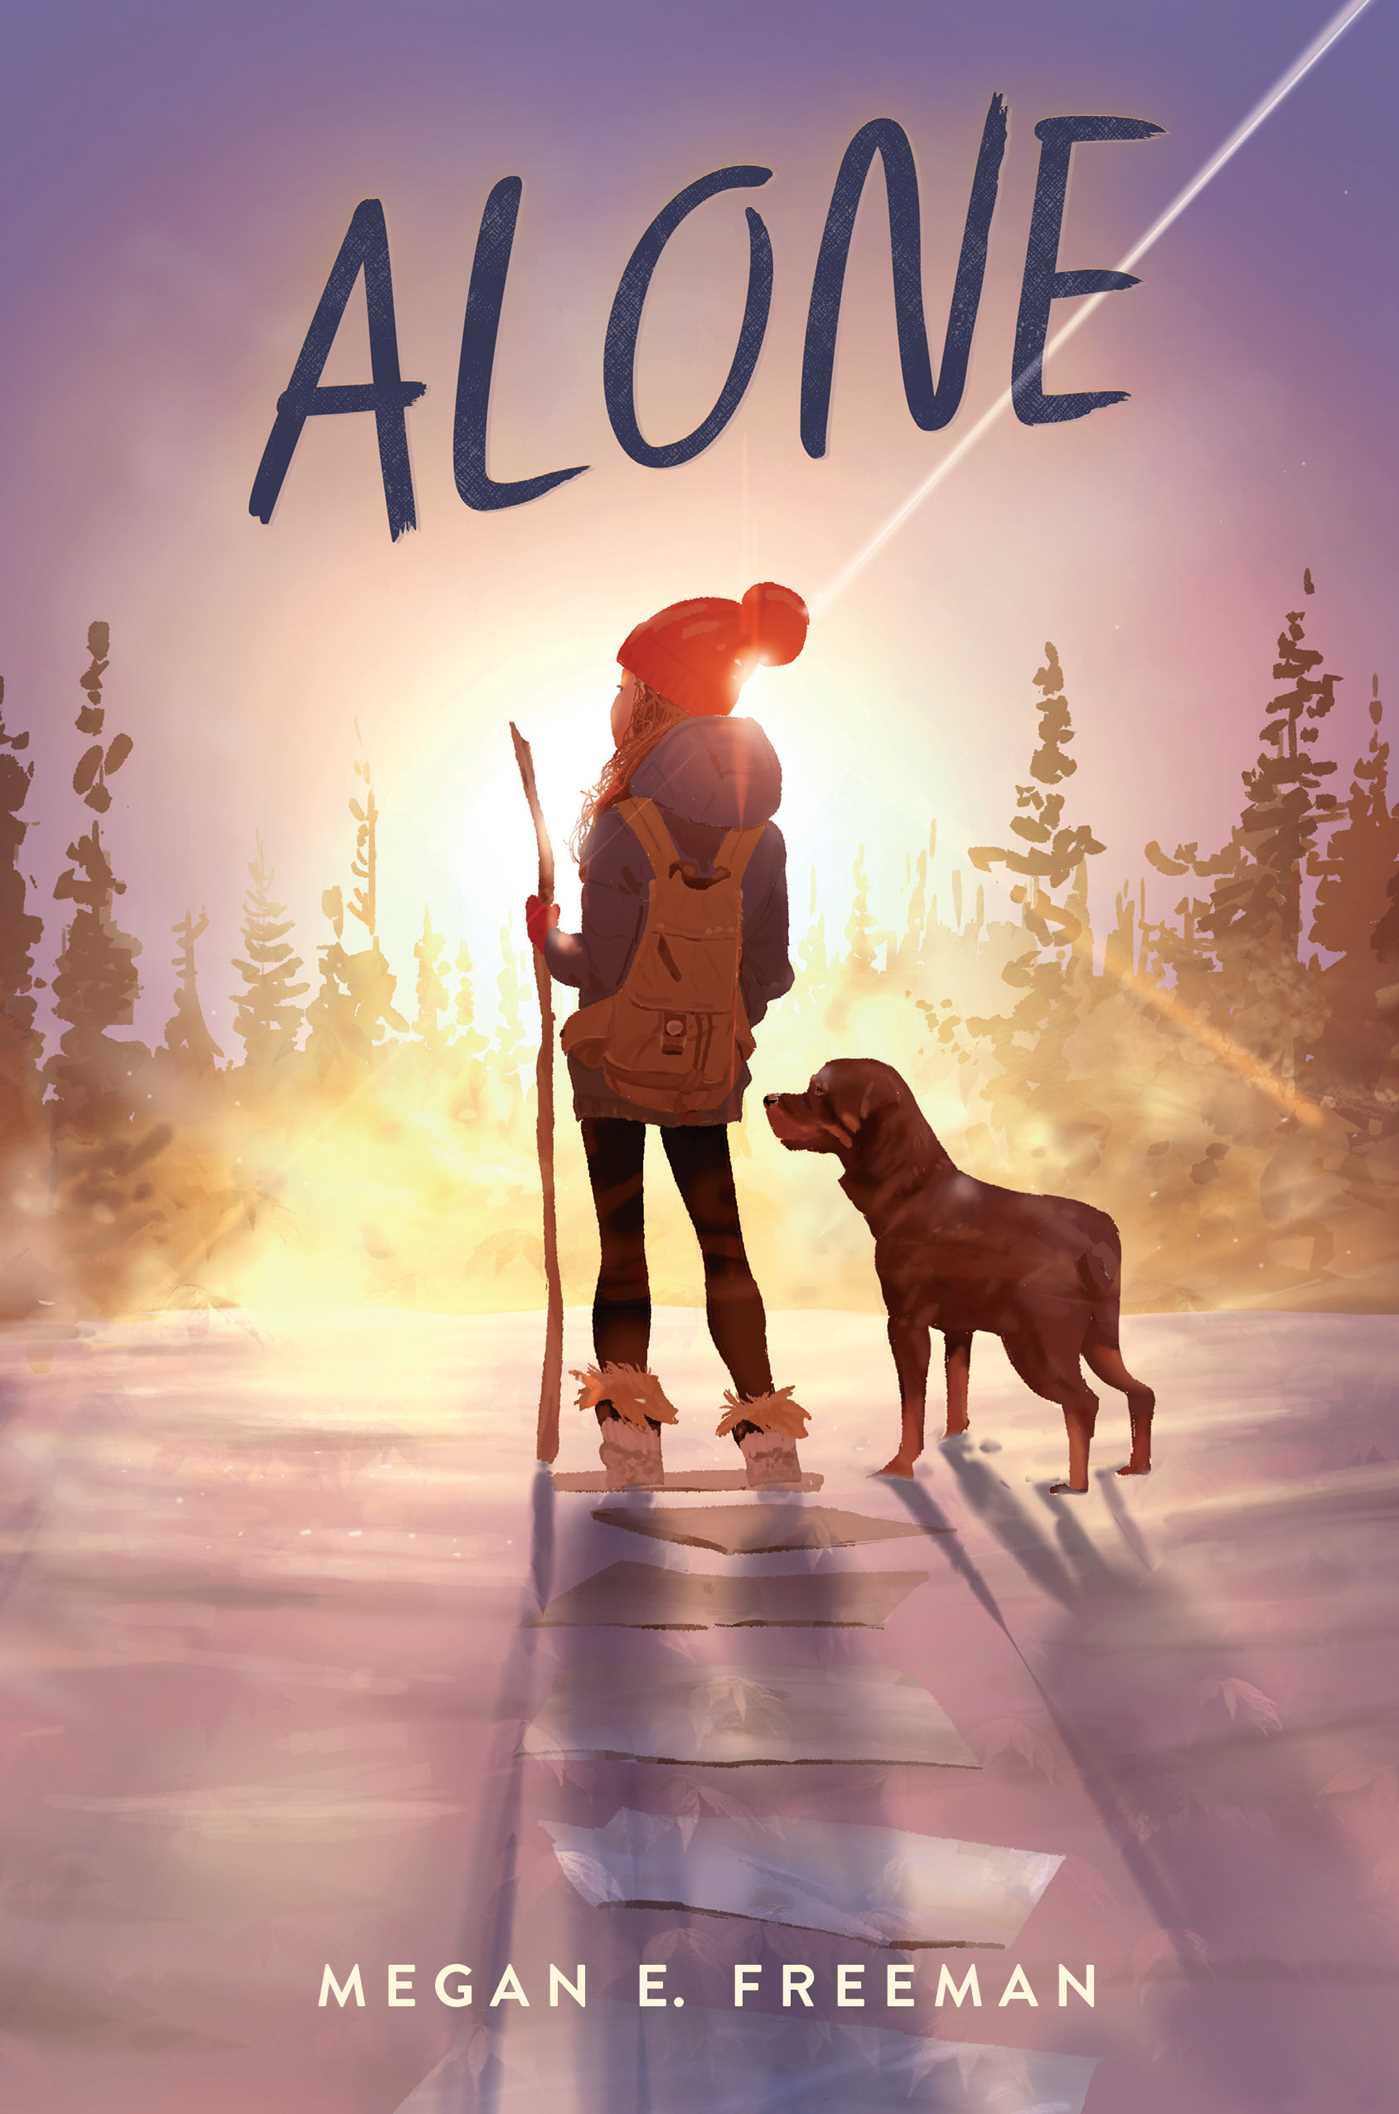 Top 2021 Releases: Alone | Book by Megan E. Freeman